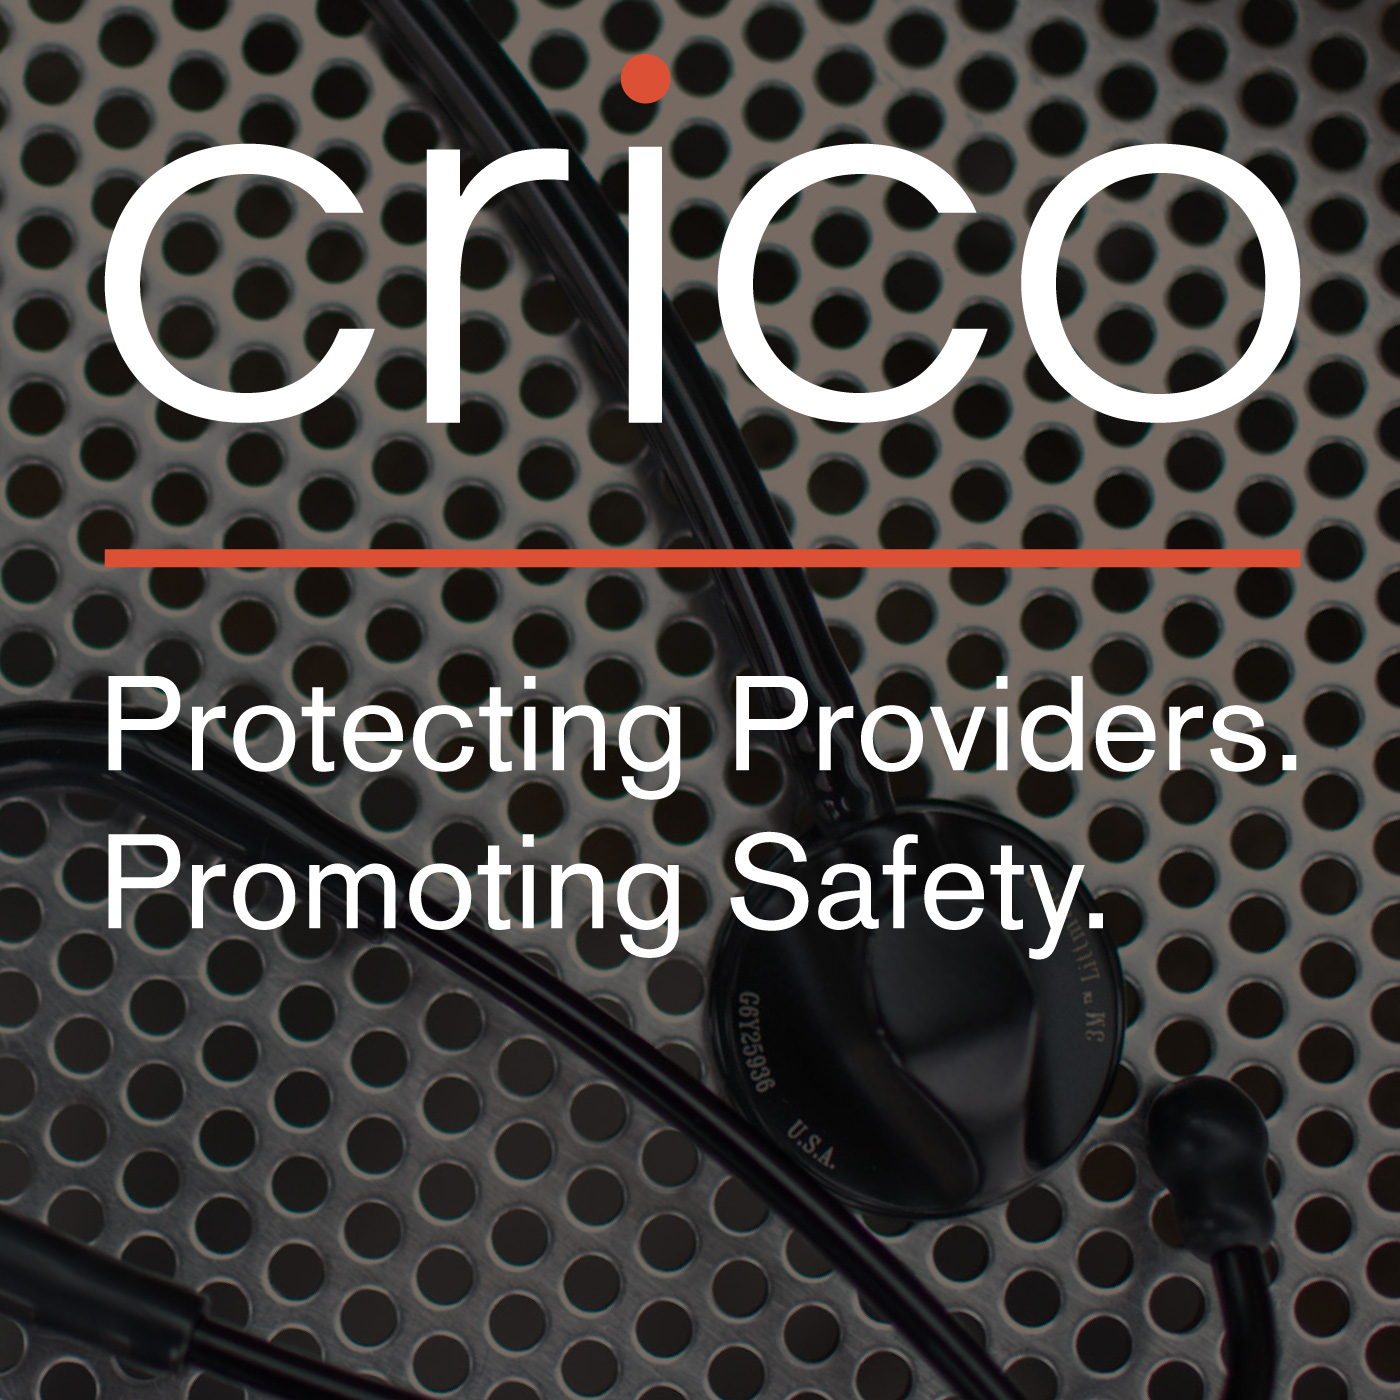 CRICO Patient Safety Updates: Medical and Legal Perspectives